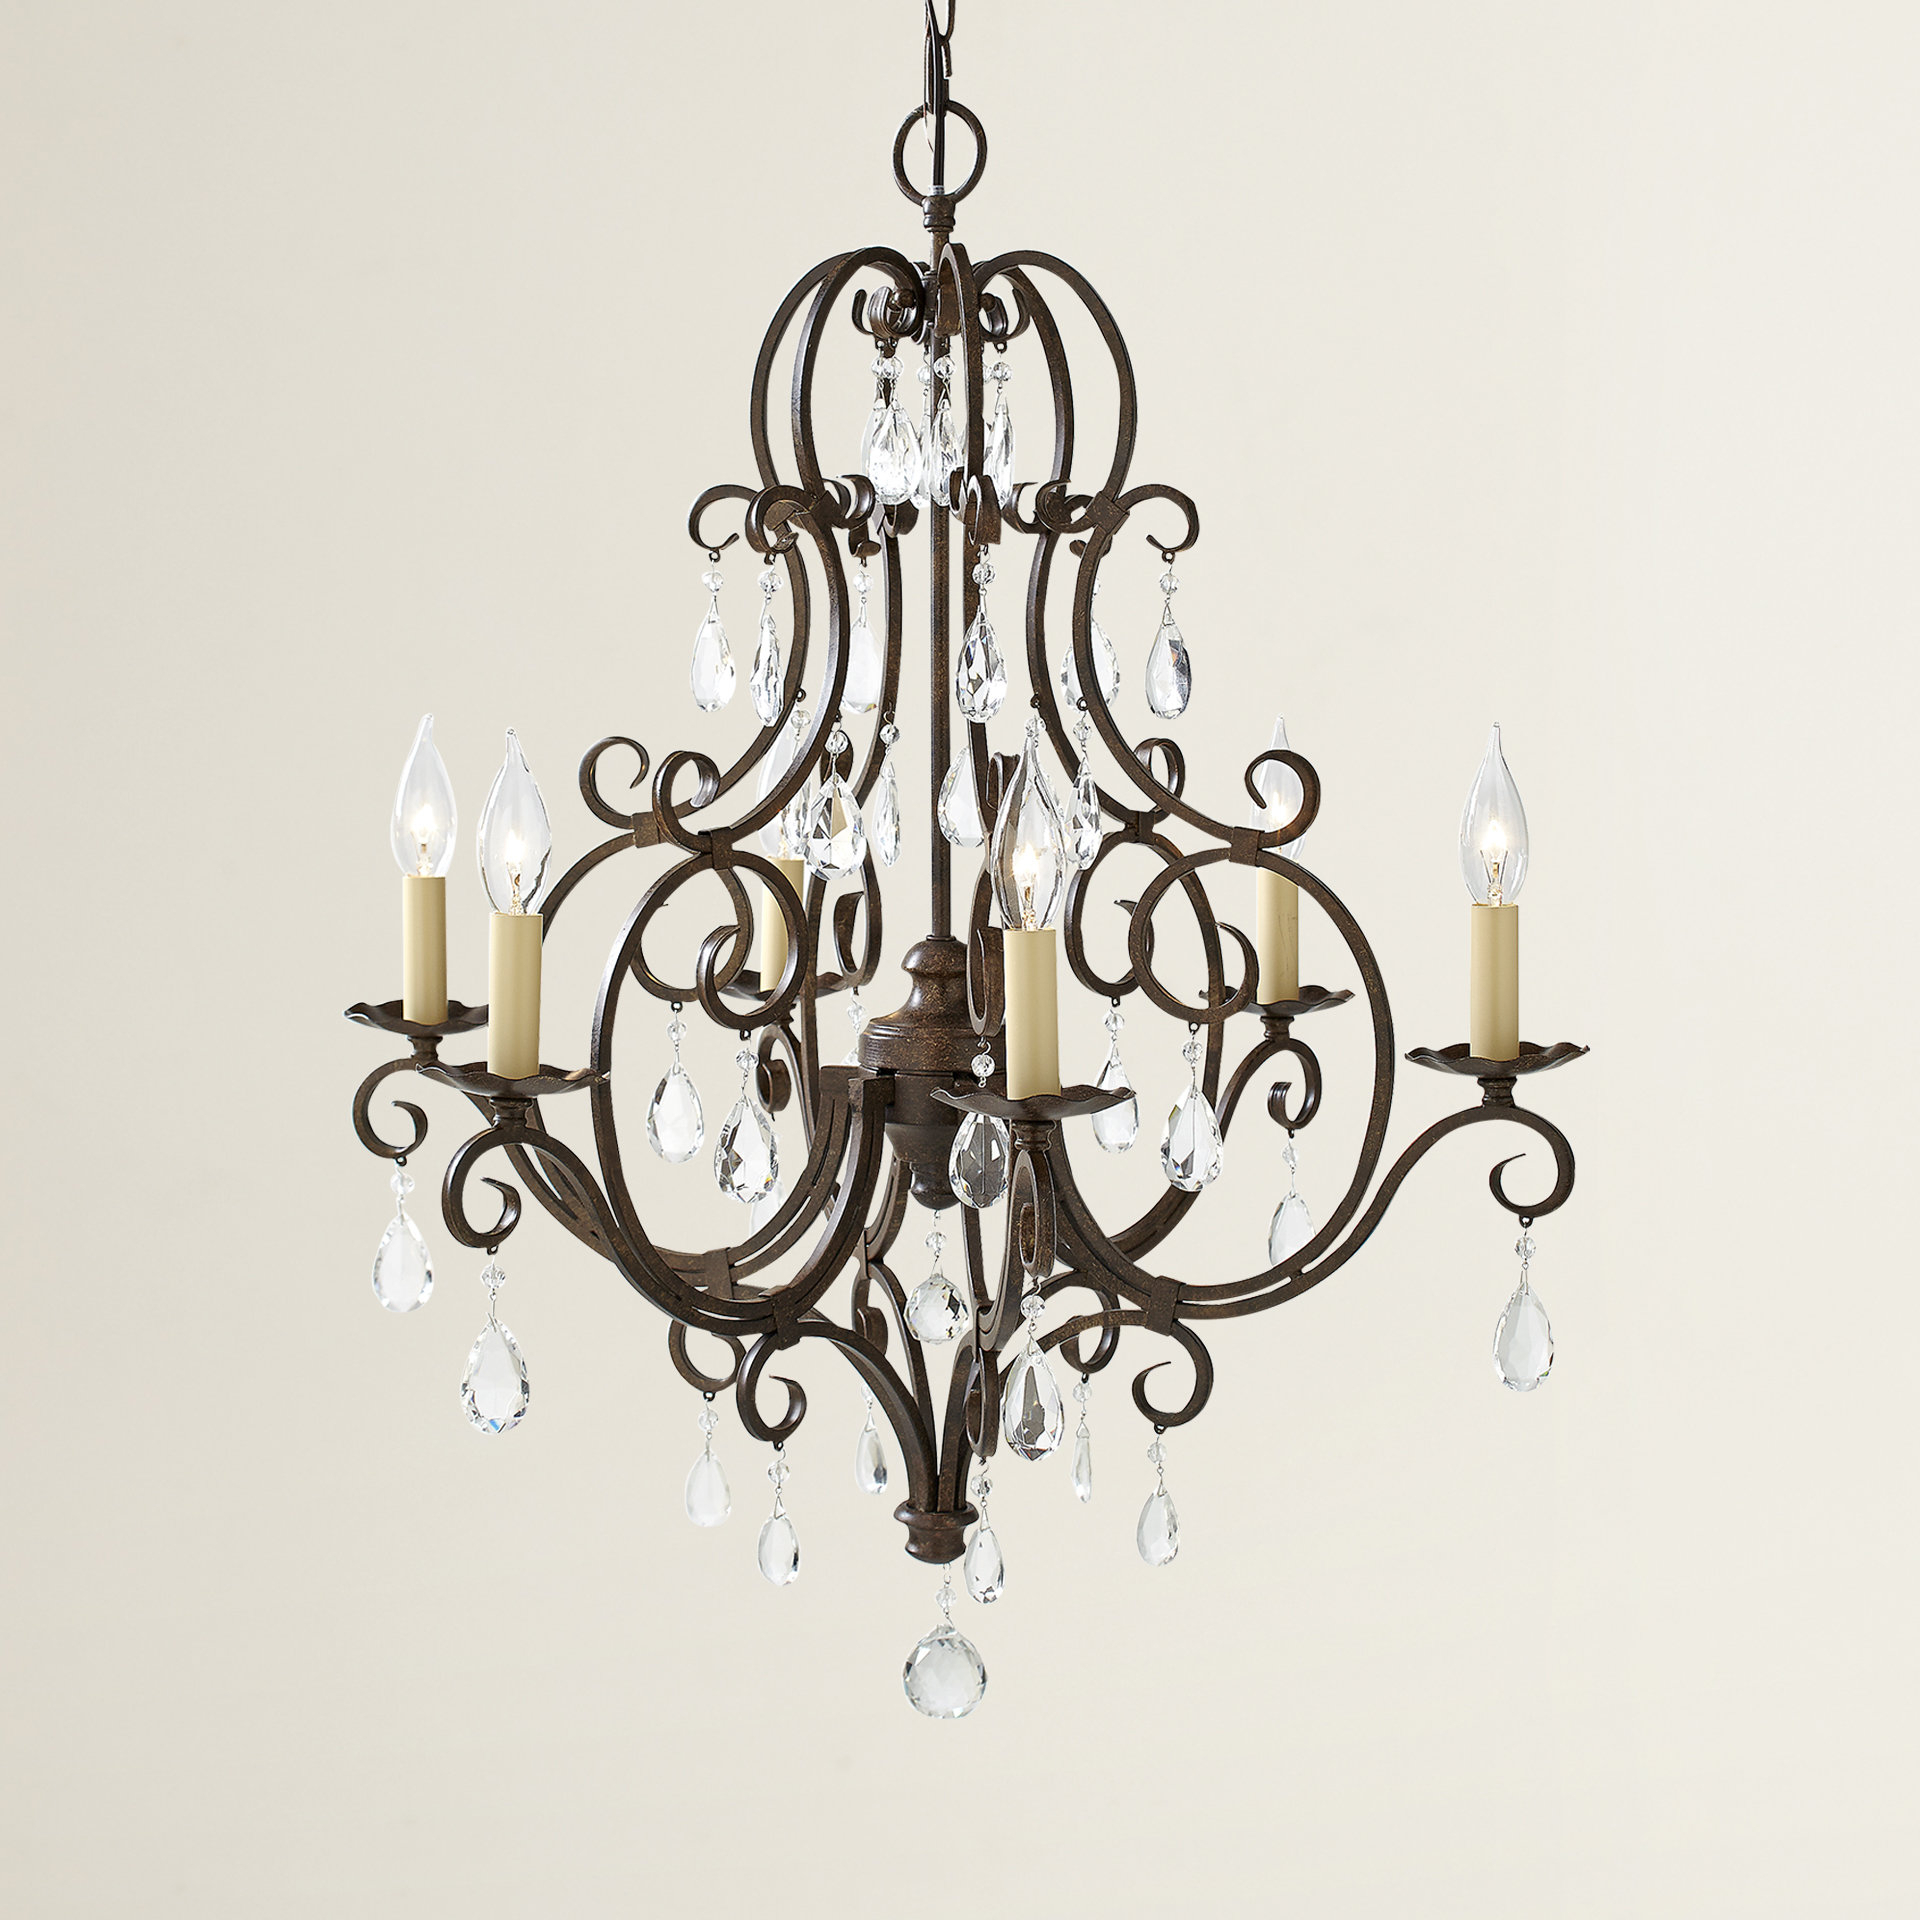 Royall 6 Light Candle Style Chandelier With Gaines 9 Light Candle Style Chandeliers (View 21 of 30)